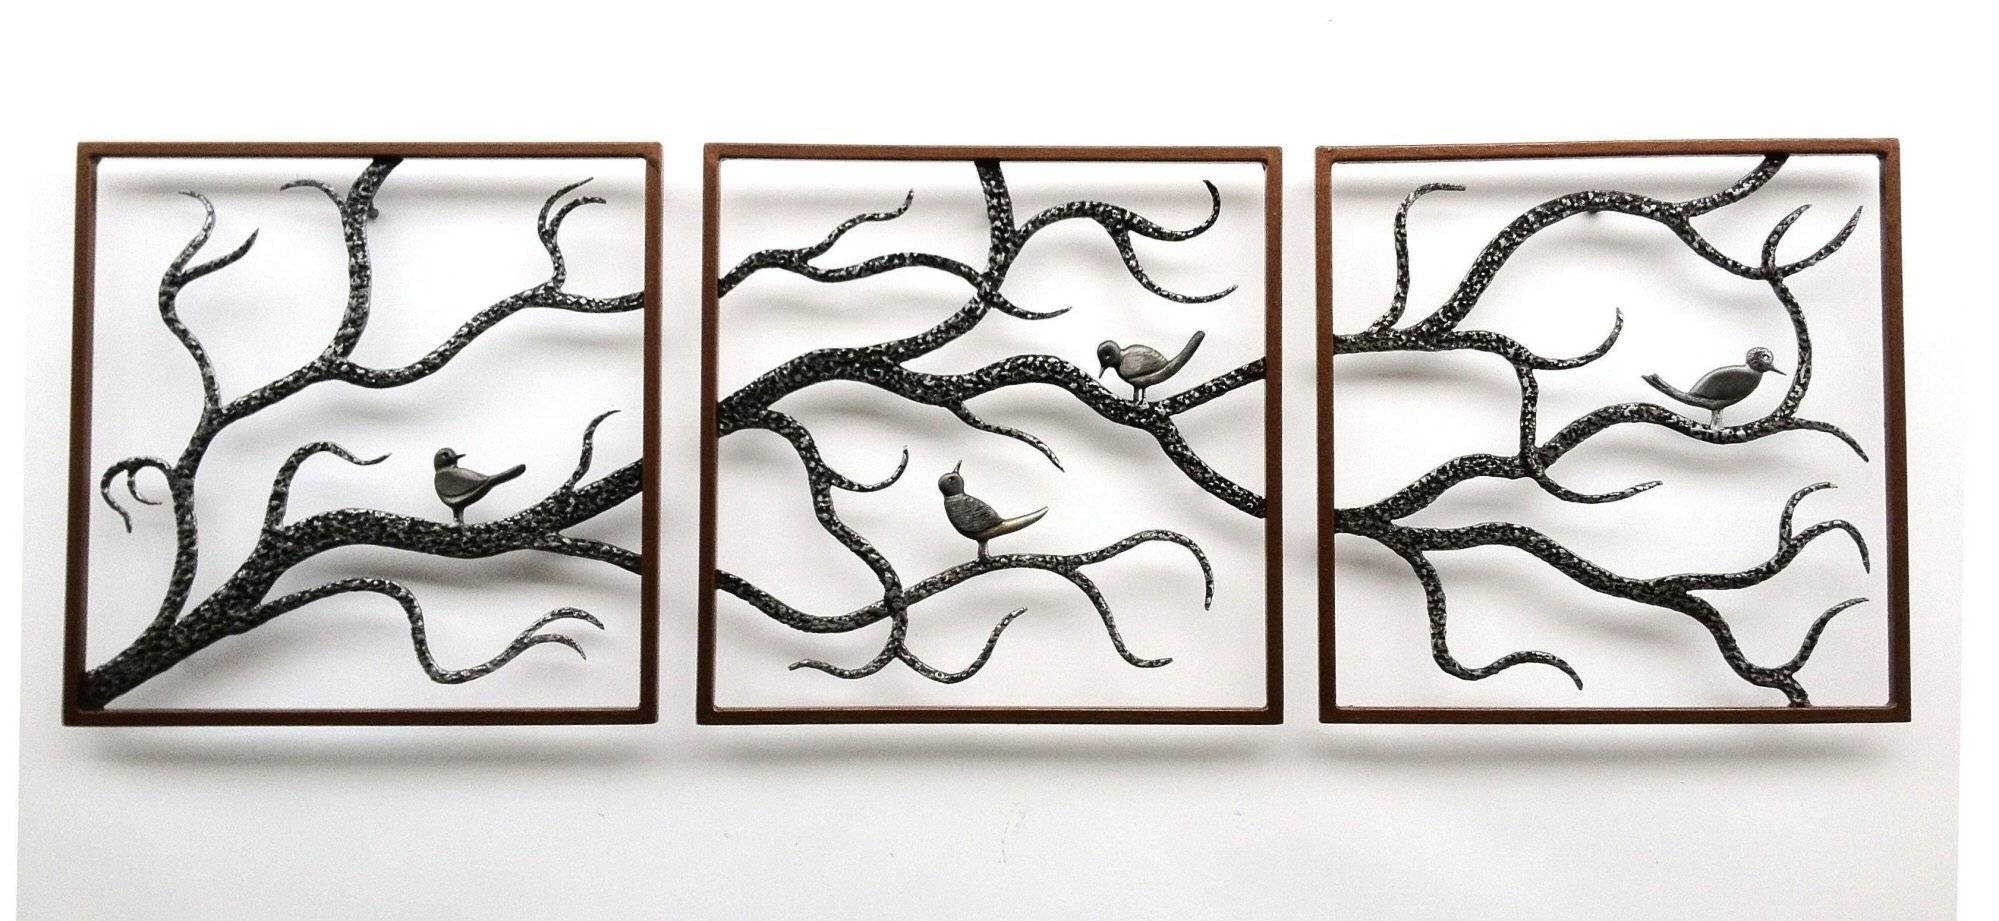 Wall Art Designs: Metal Wall Art Trees Birch Three Framed Cute Regarding Most Up To Date Metal Wall Art Branches (View 5 of 20)